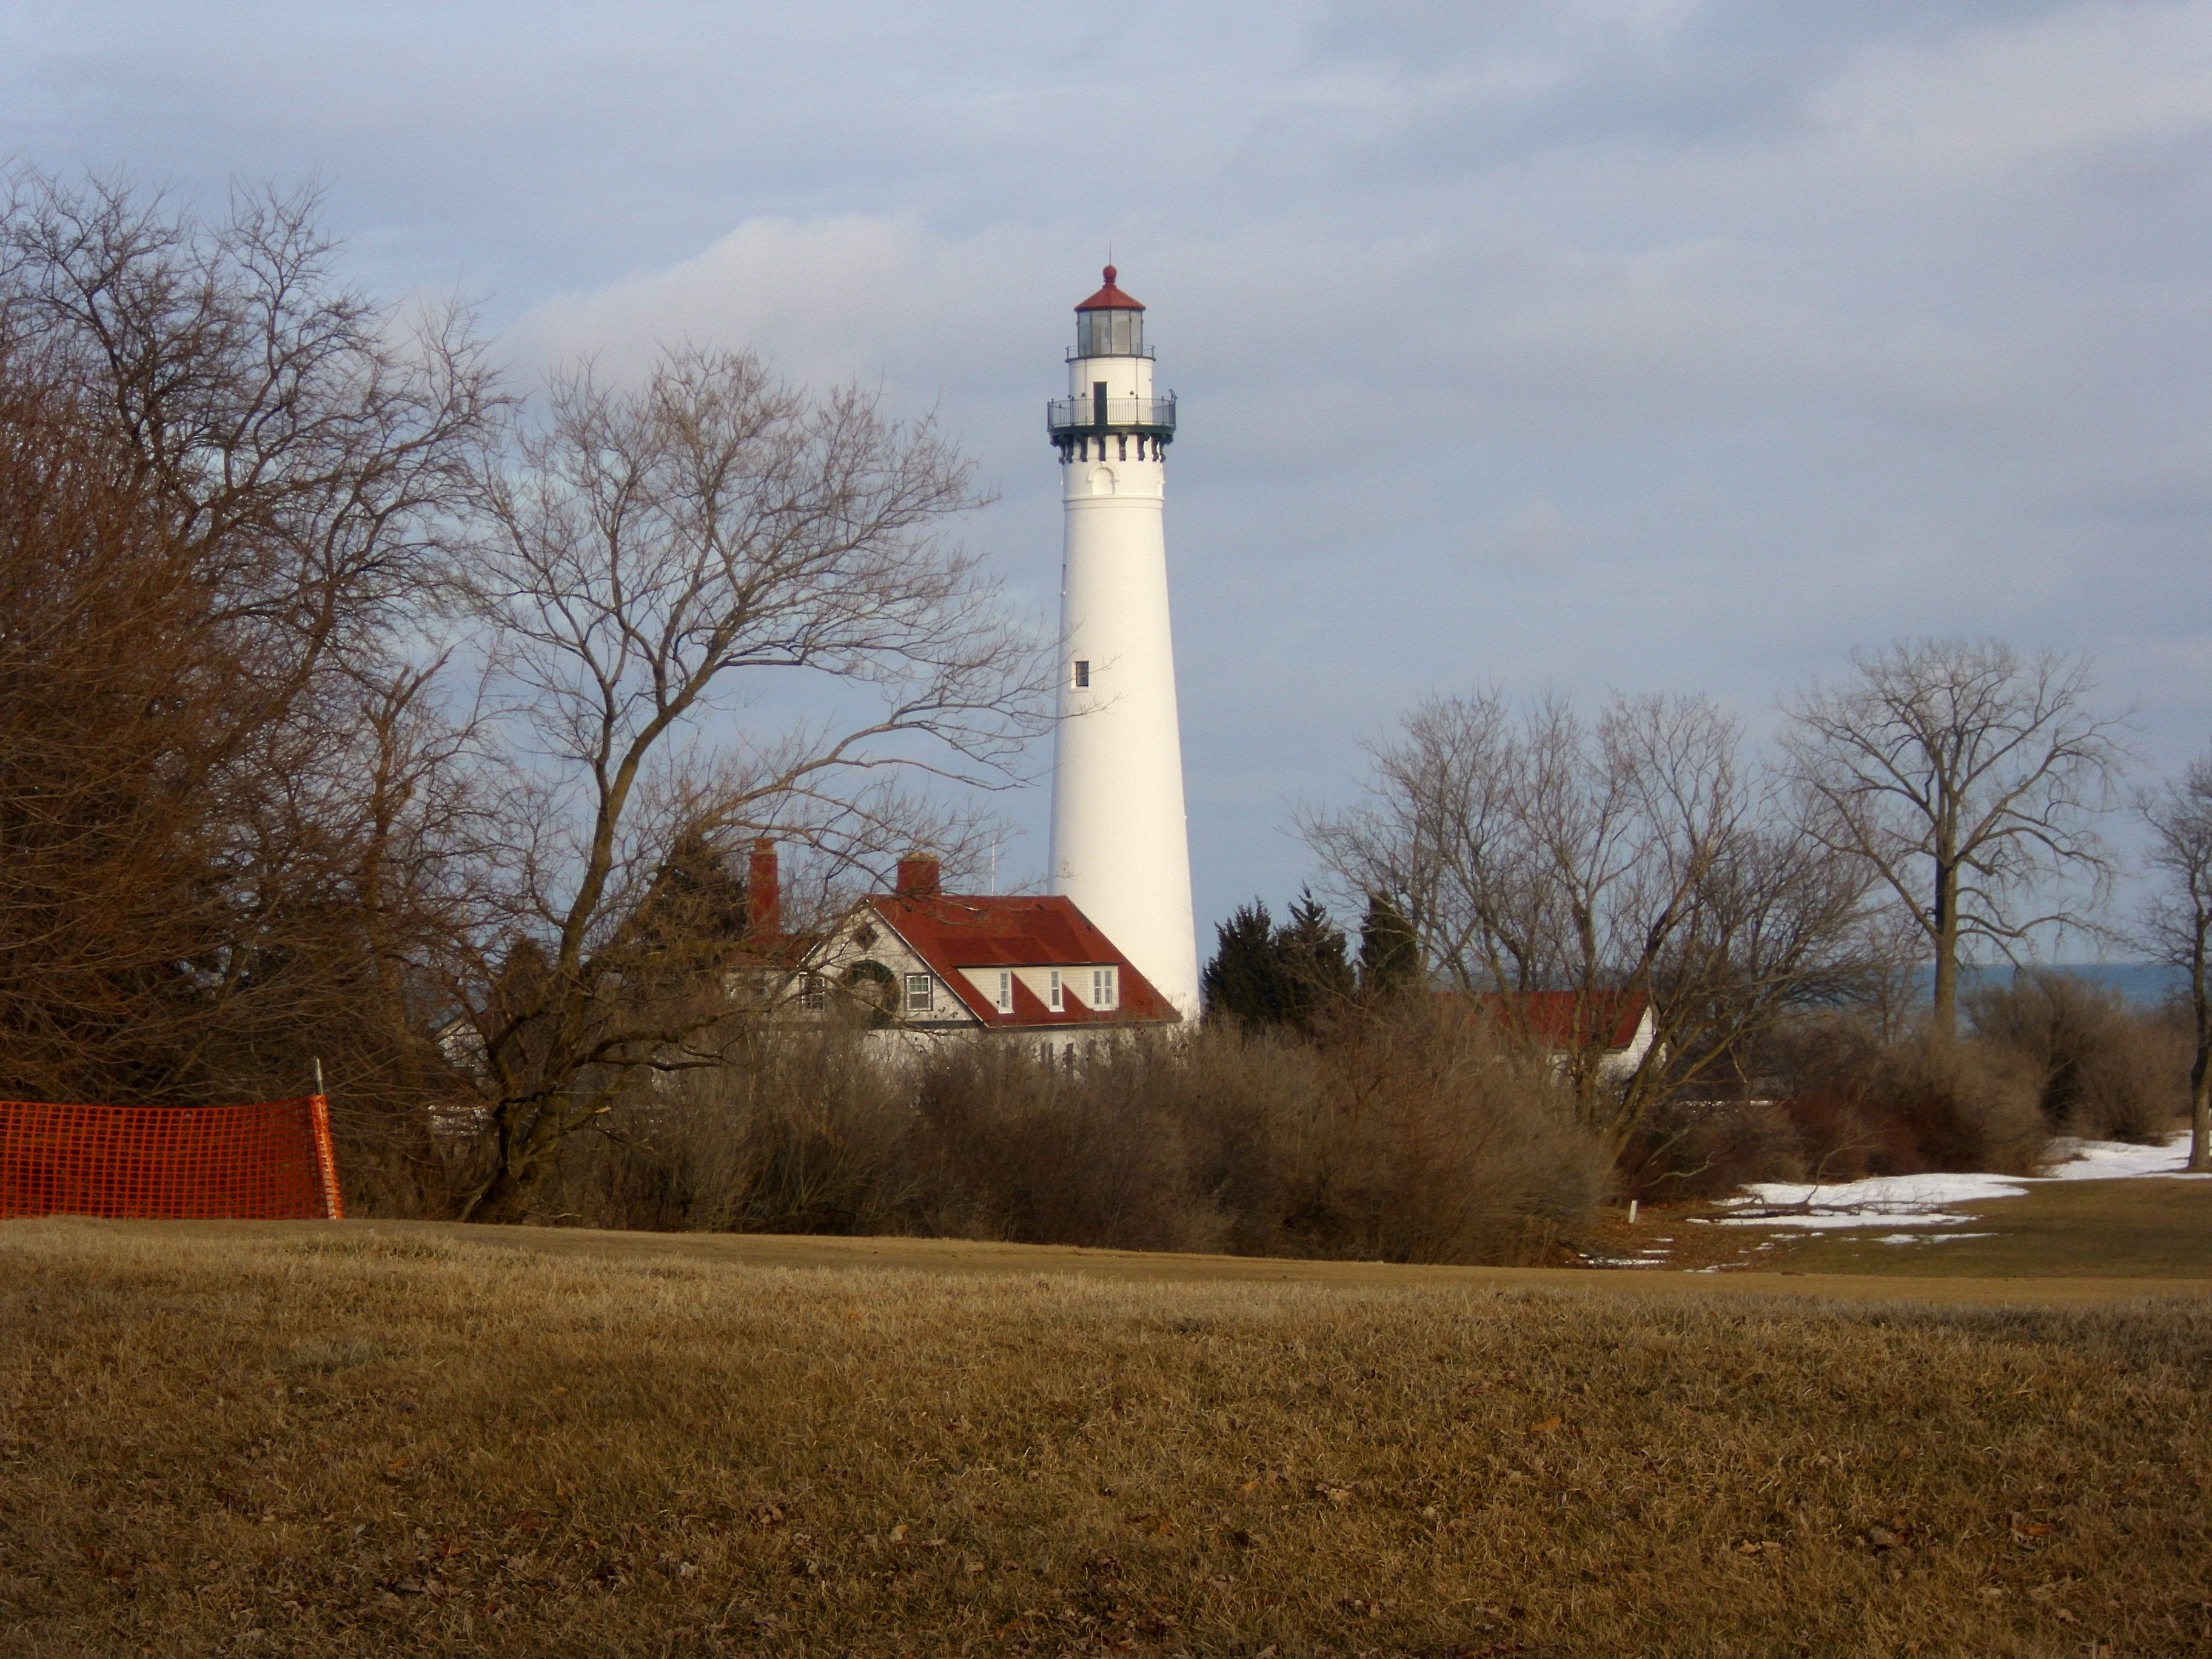 Here is a photo I took of the lighthouse.